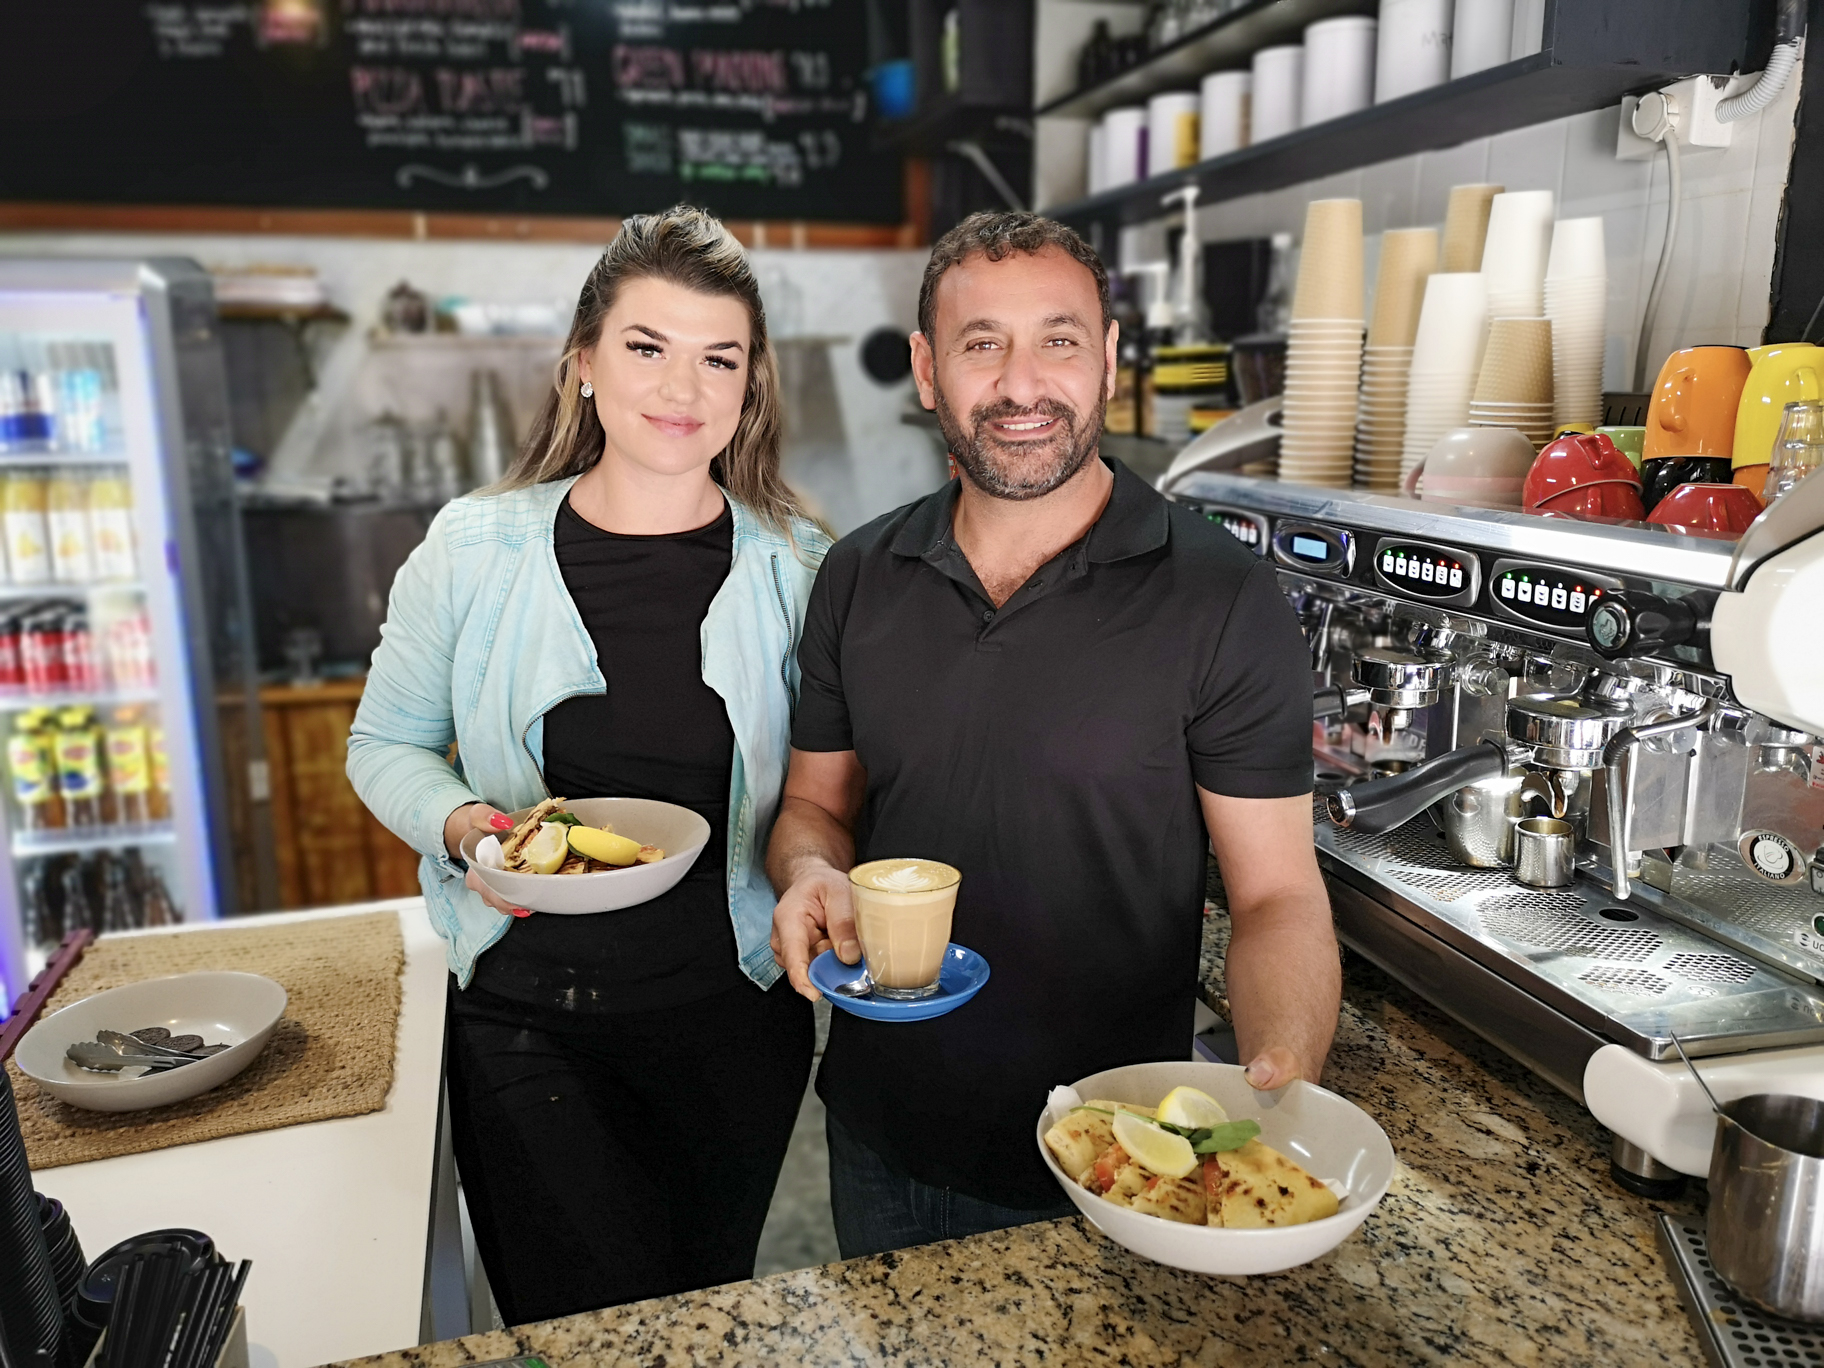 Lady and man holding plates of food in a cafe